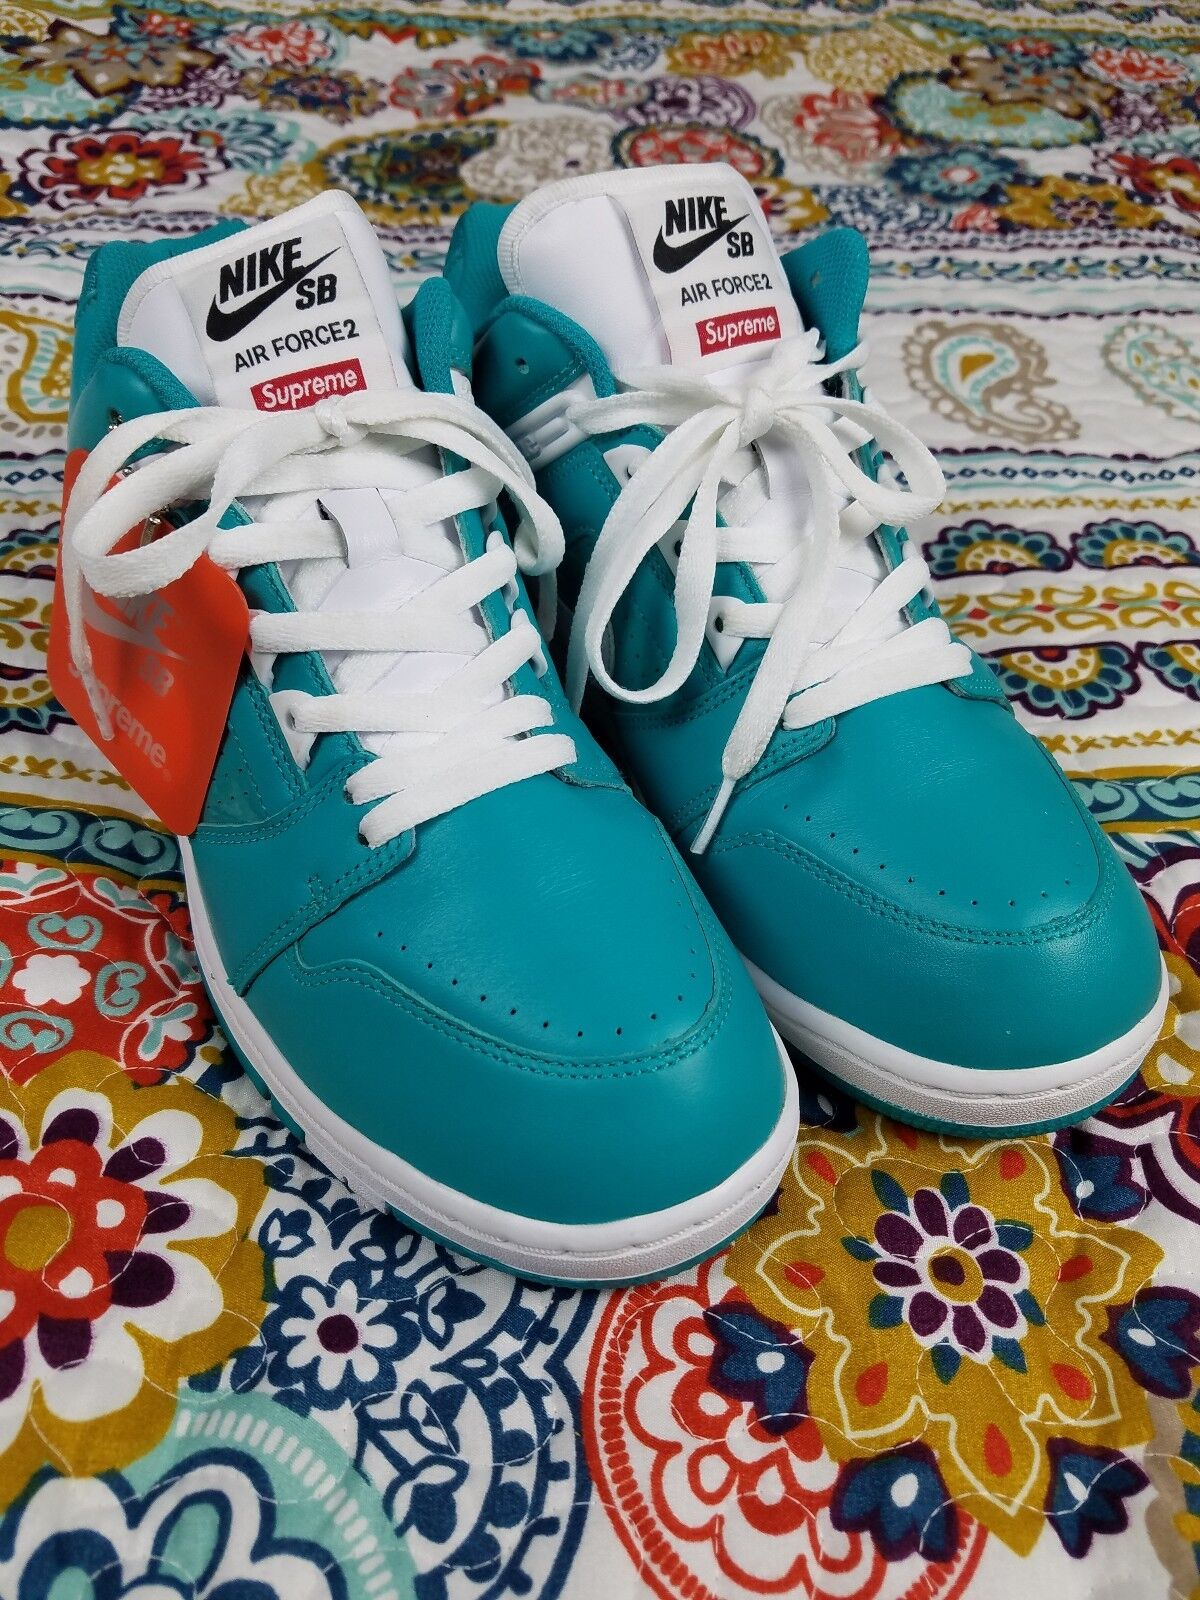 new concept 91663 44190 Nike Air Force 2 II x Supreme Teal Low Top Top Top Sneakers Mens 10.5 shoes